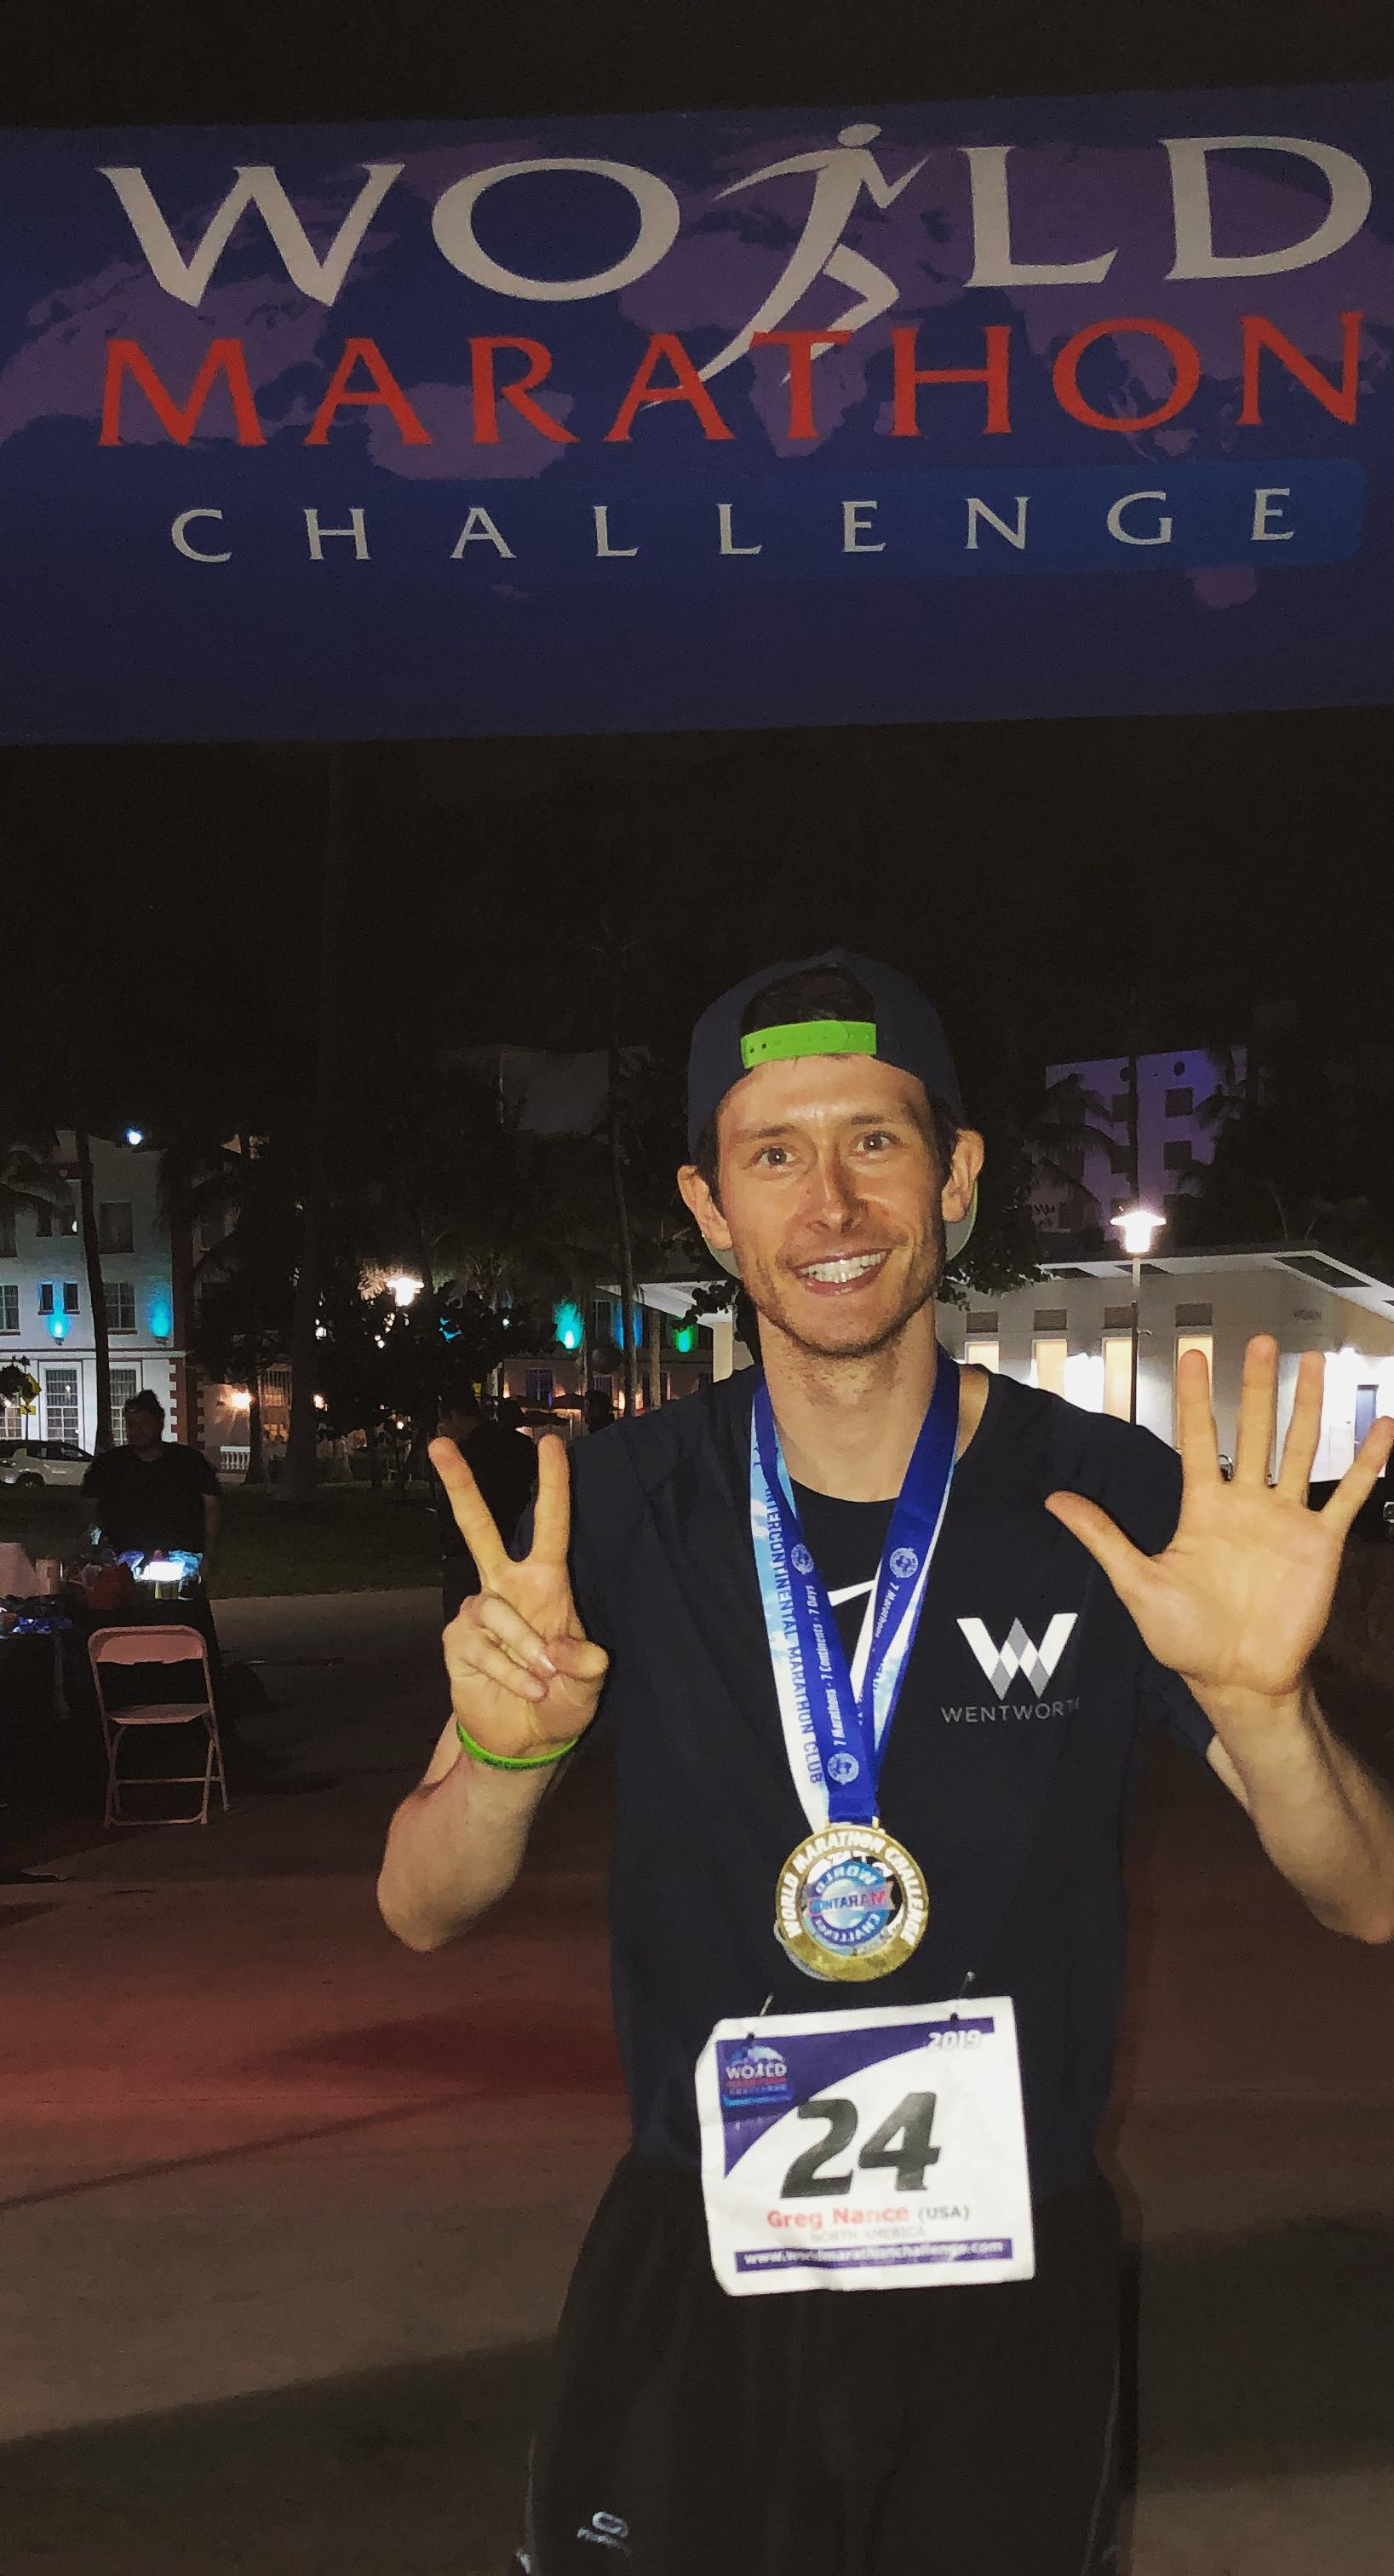 Greg Nance crossing the World Marathon Challenge finish line in Miami